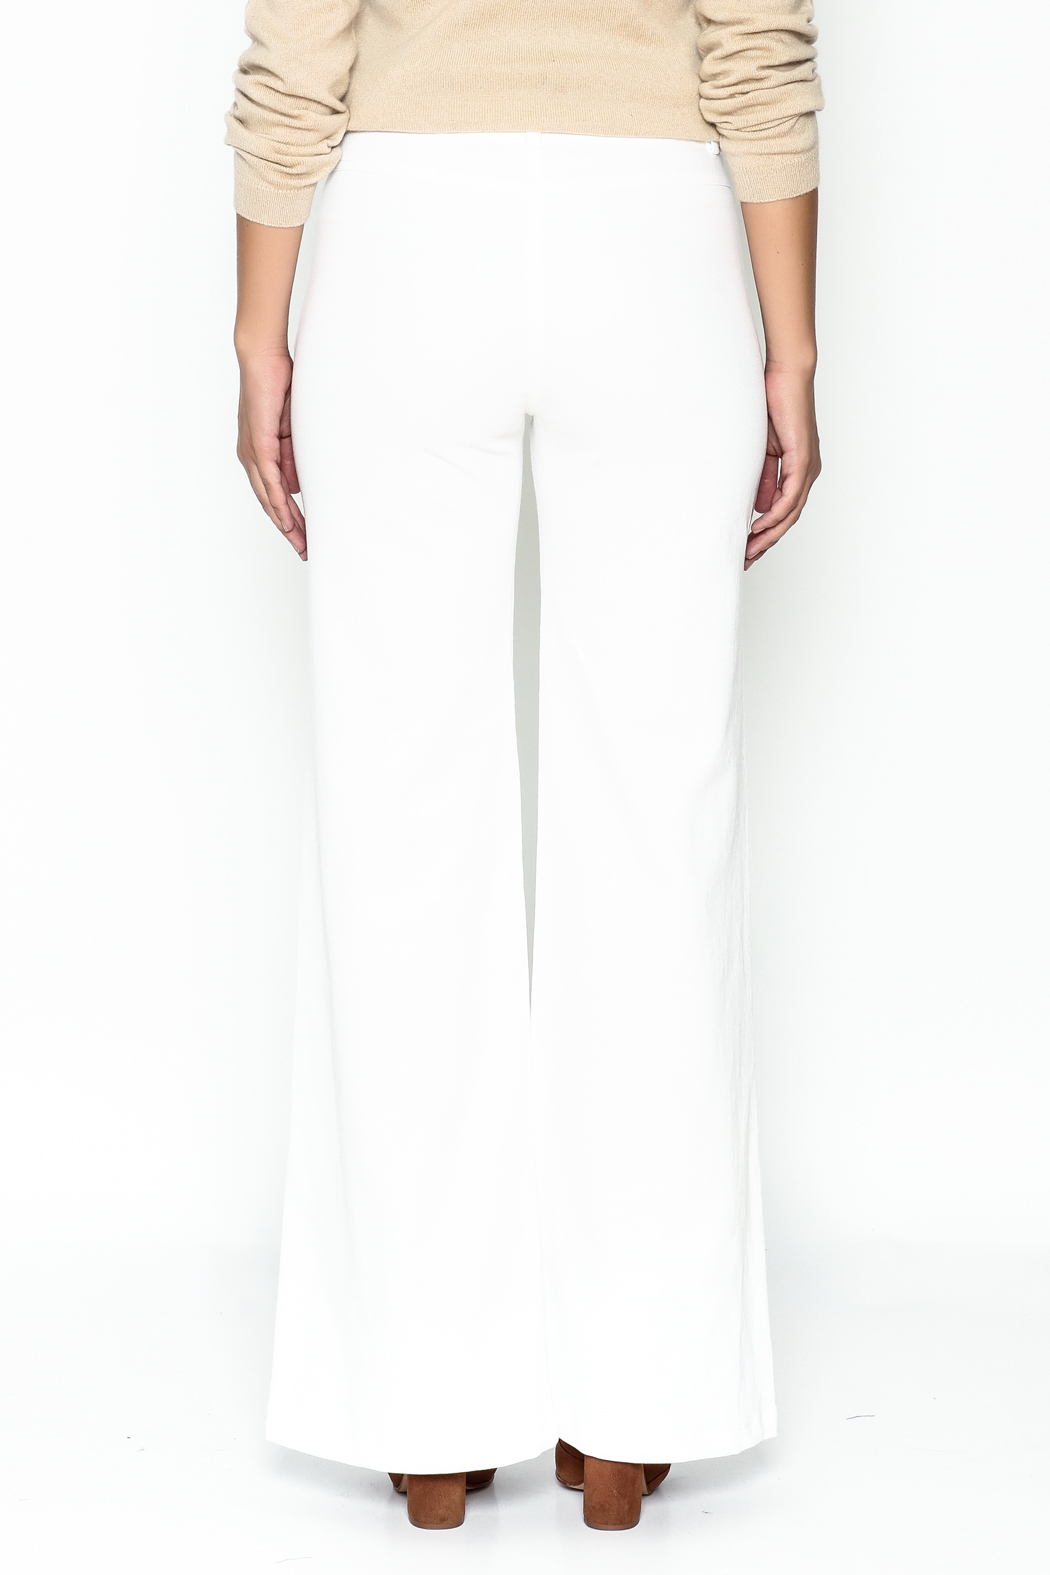 Julie Dorst White Denim Flare Pants - Back Cropped Image